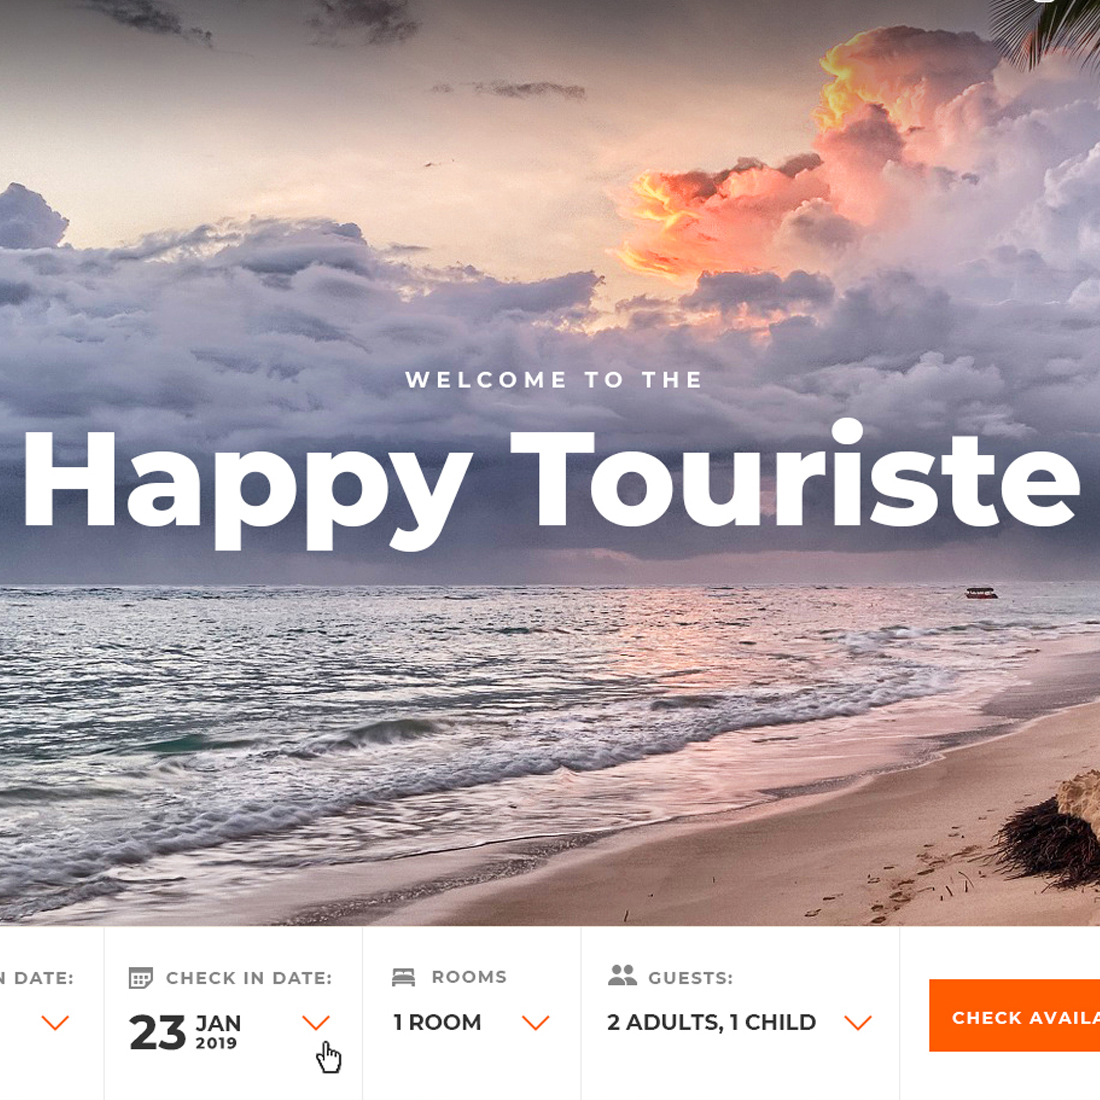 Happy Touriste - Travel Tourism Hotel Booking PSD Template